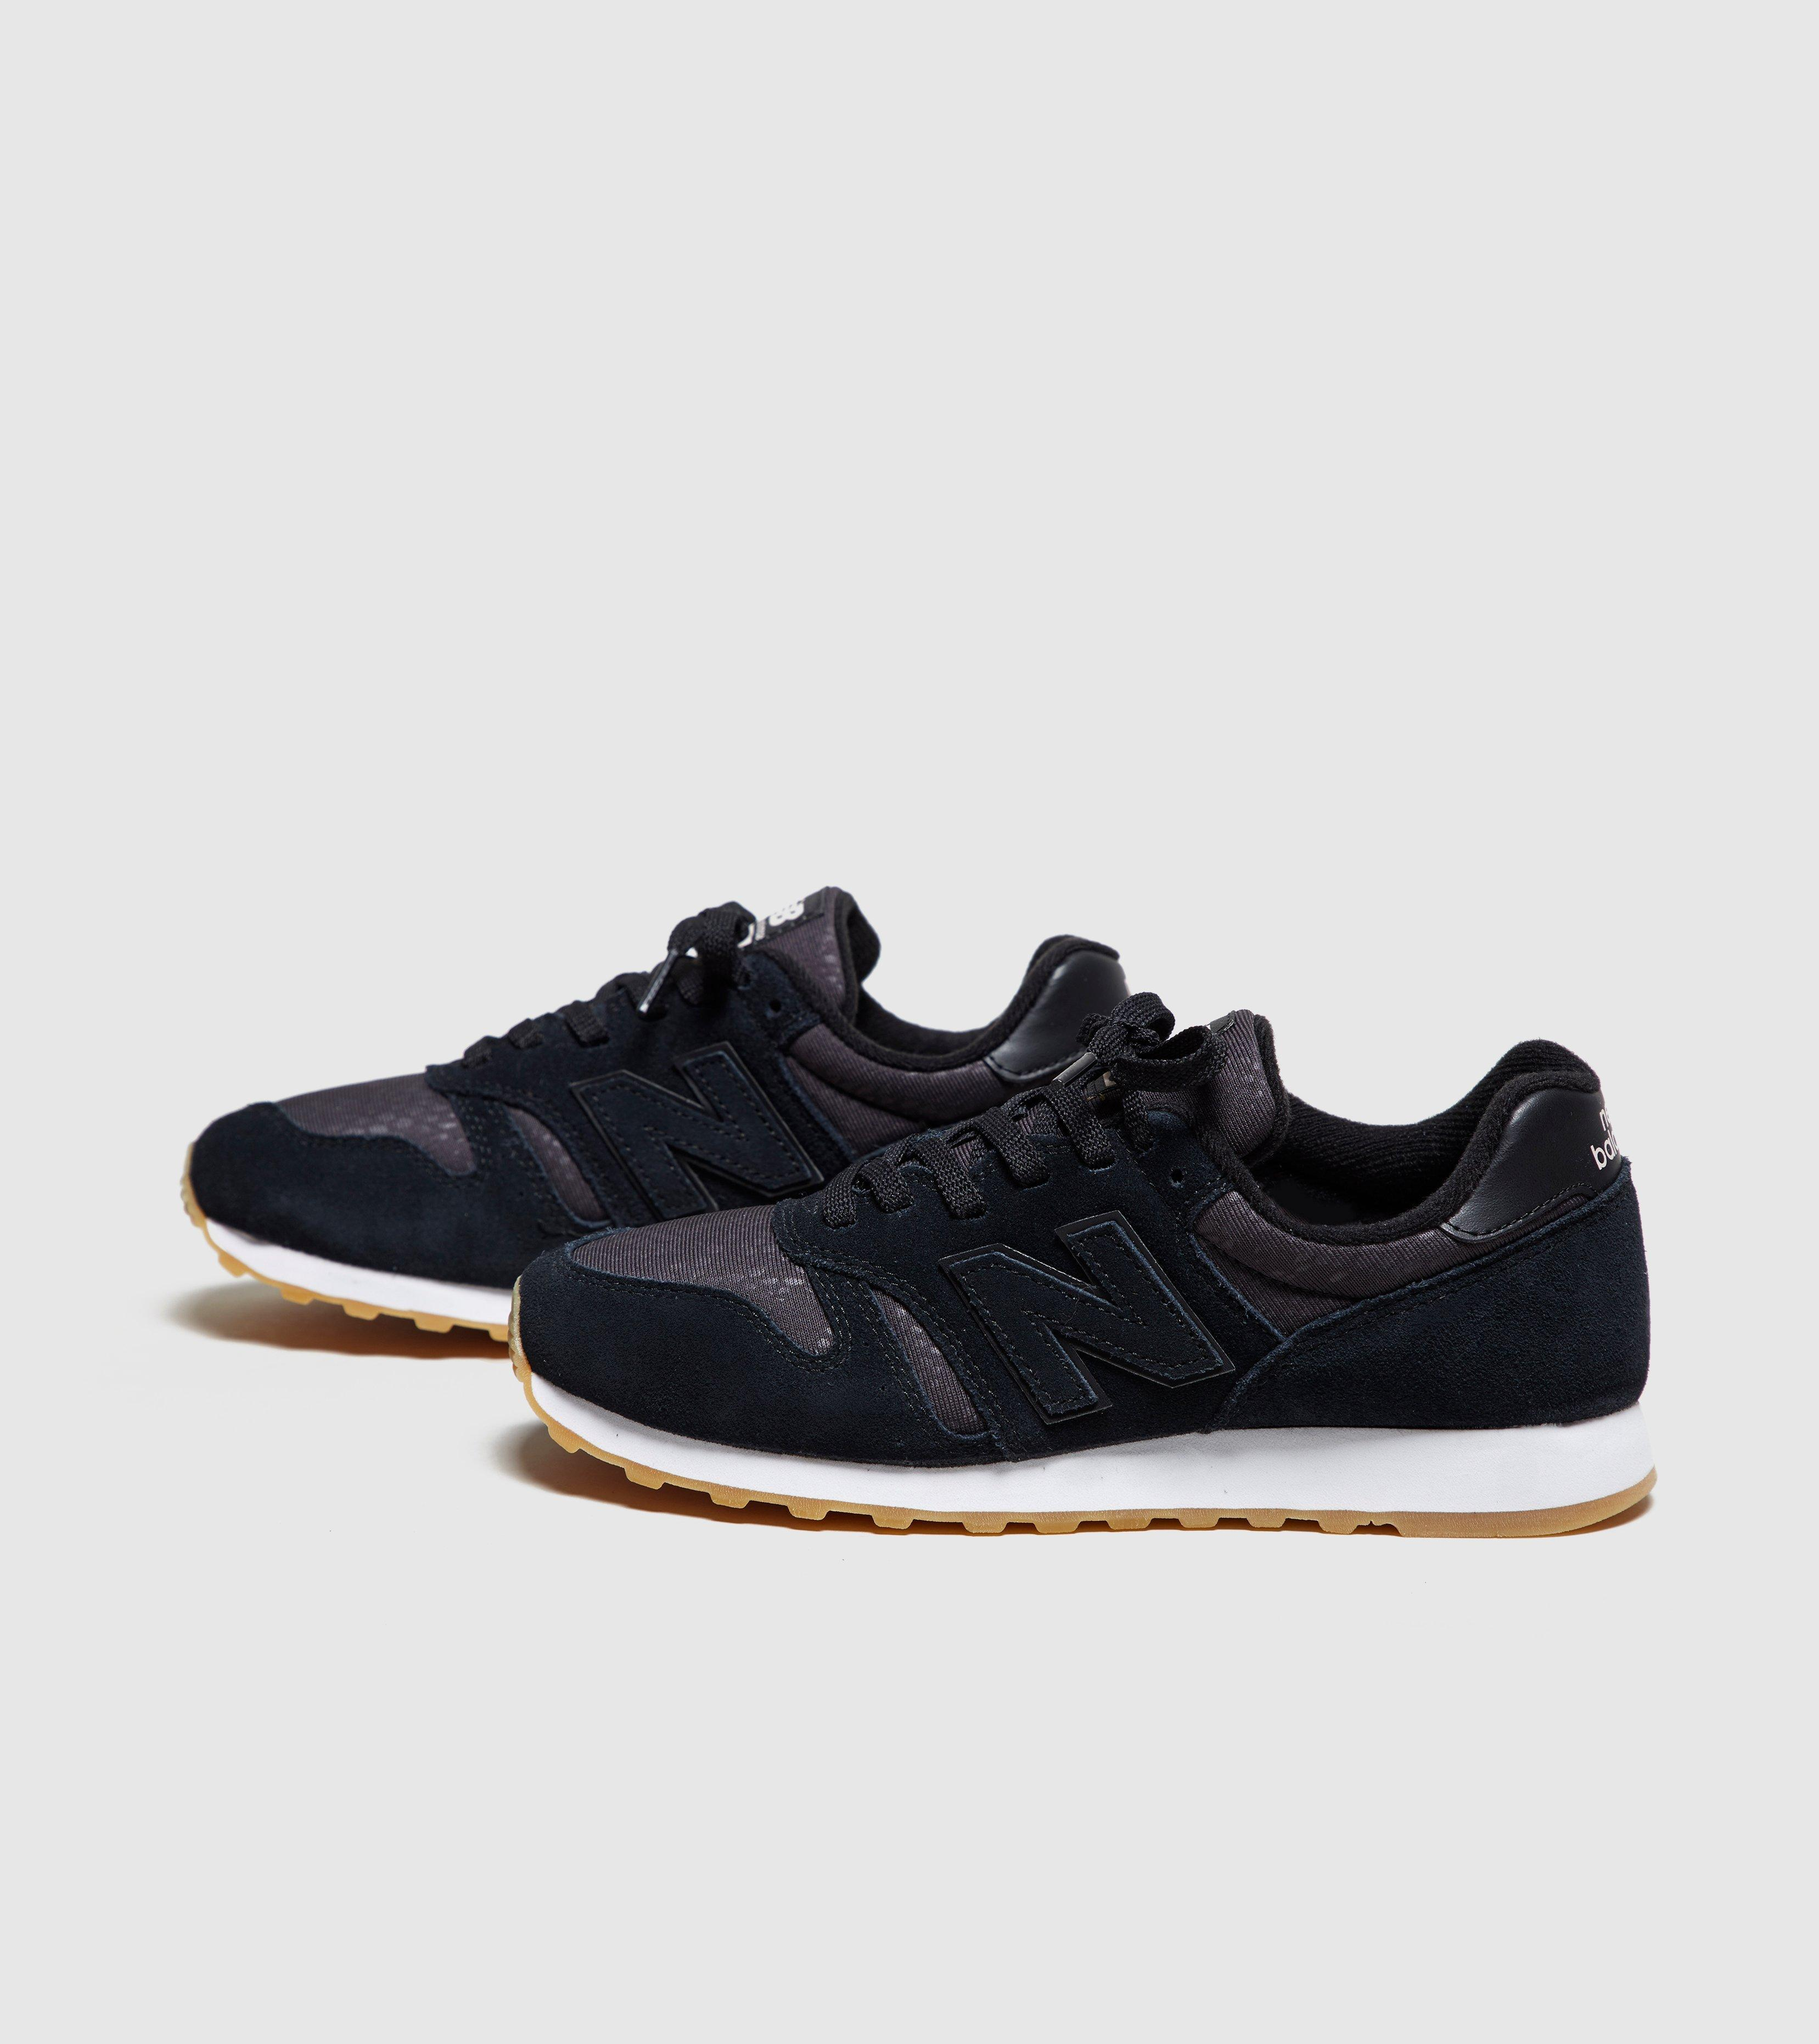 new balance 373 black gum